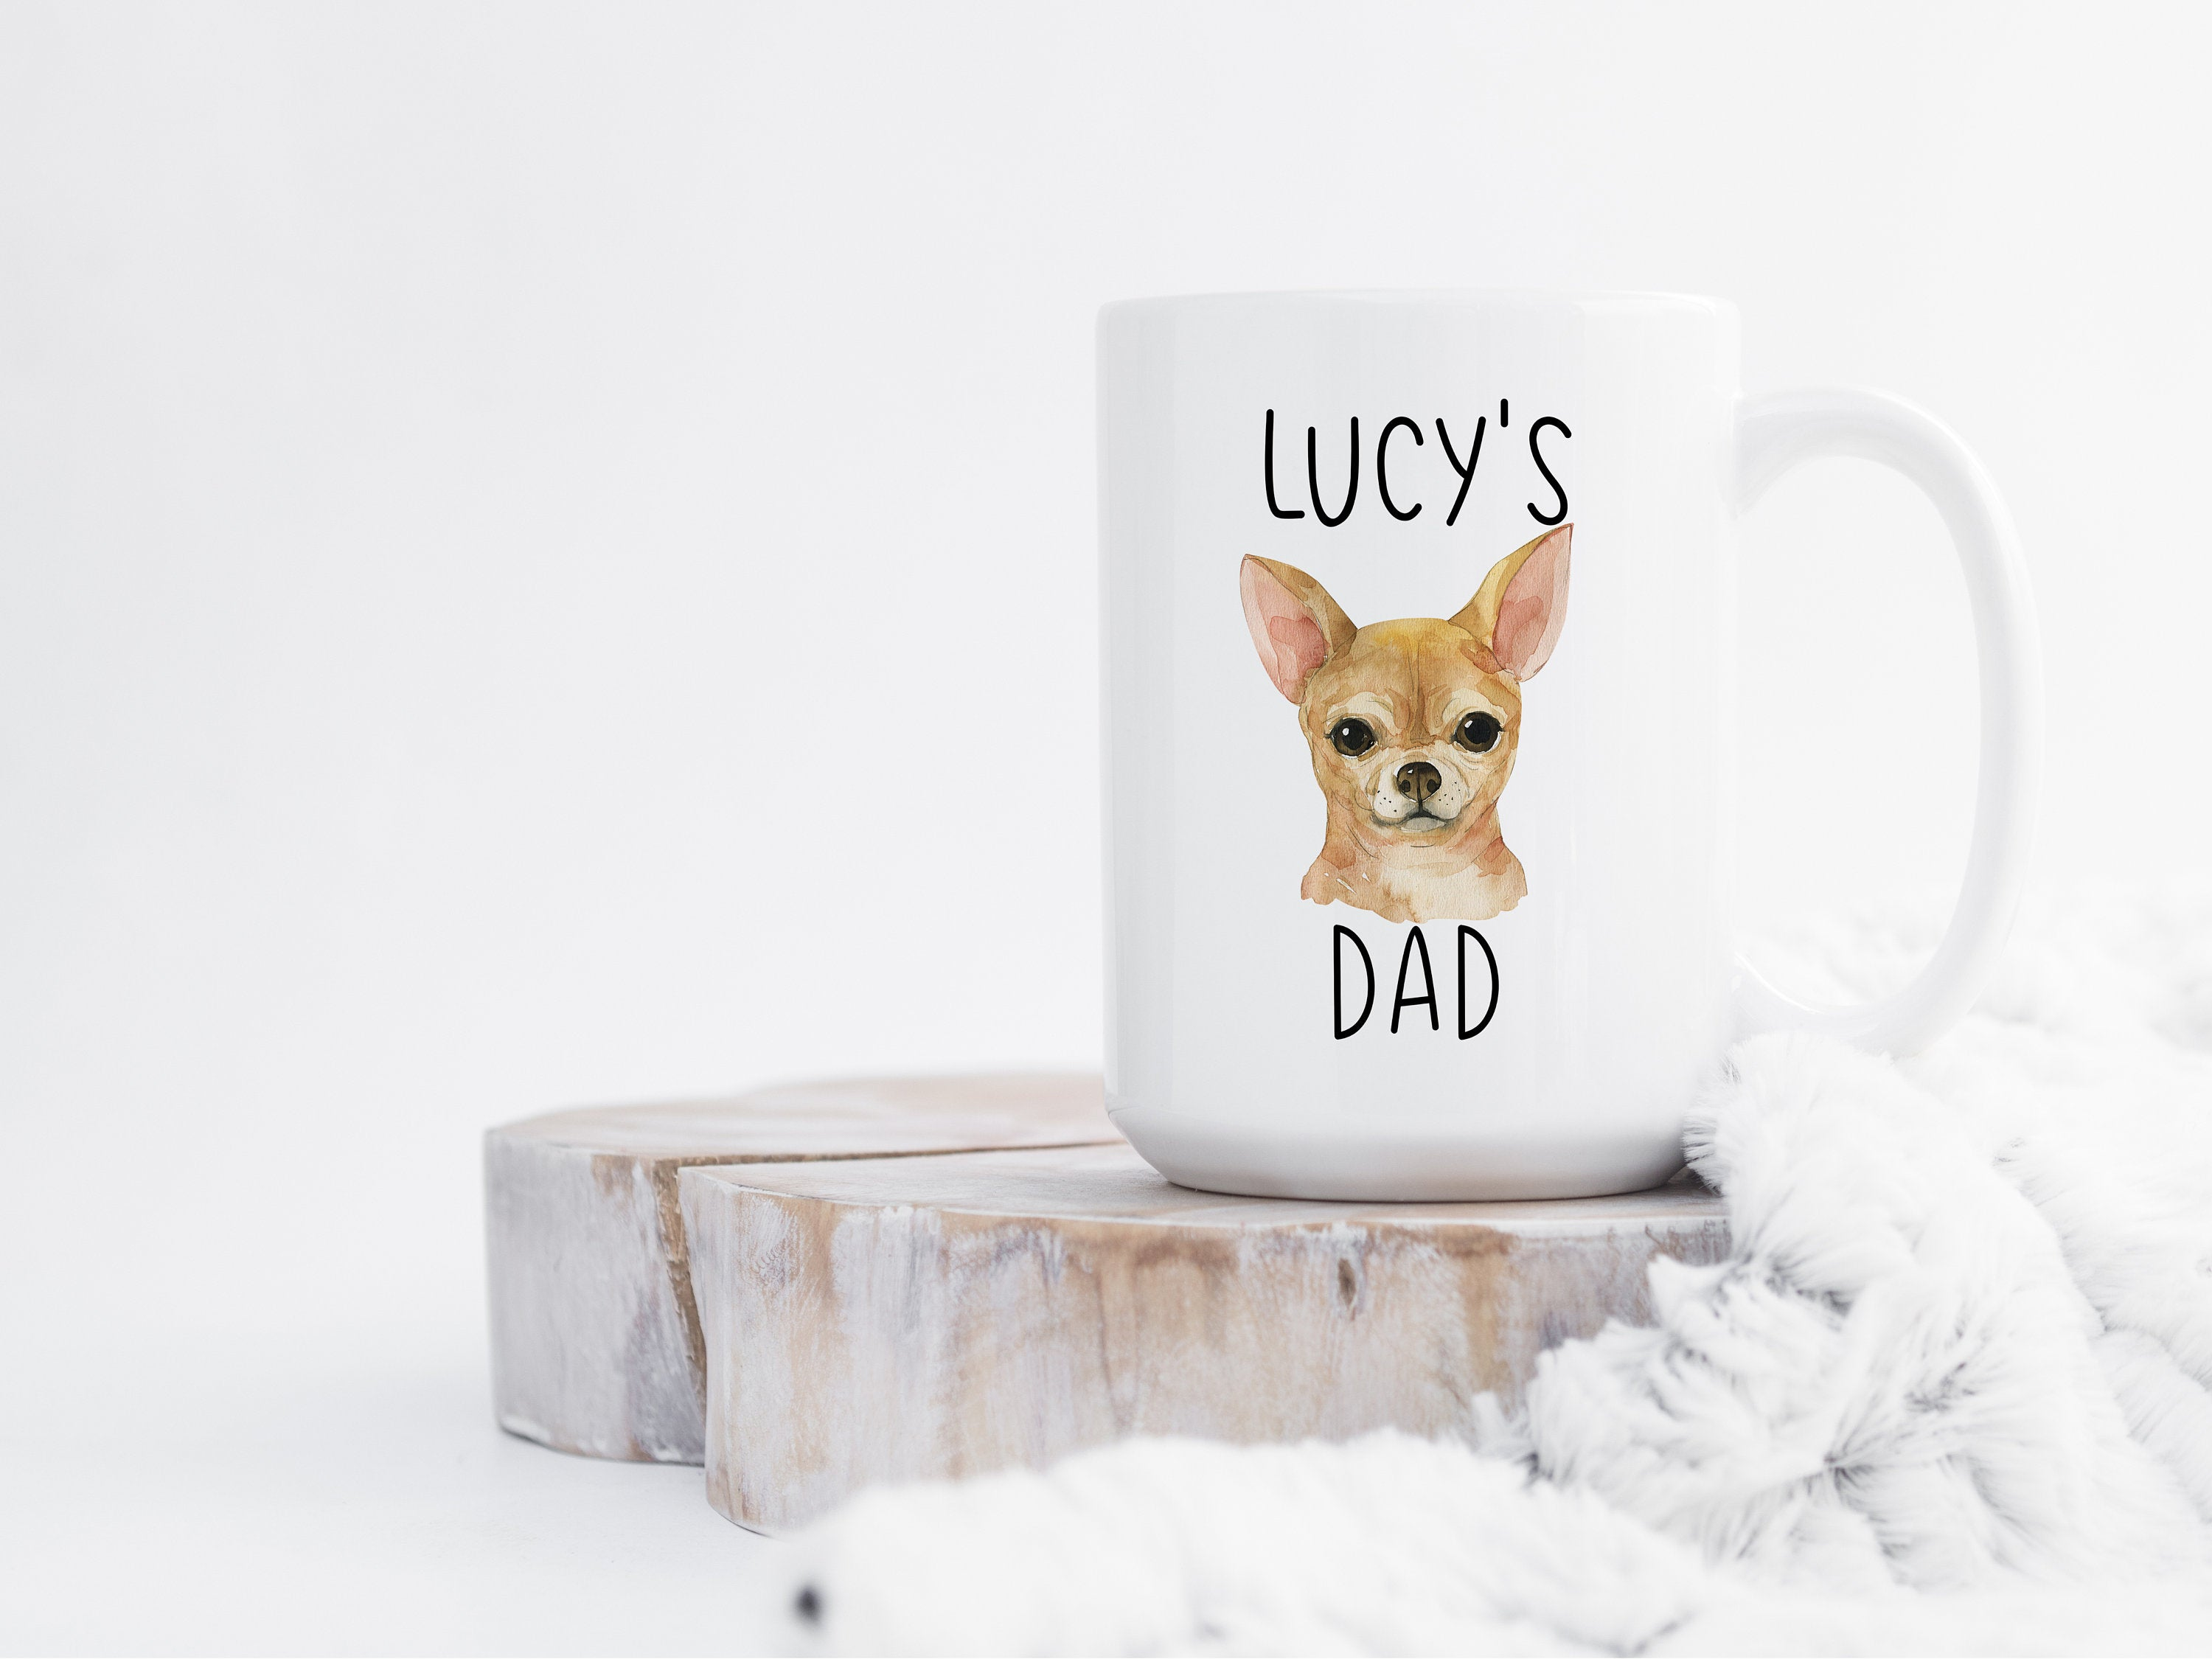 Personalized Dog Dad Gift, Custom Chihuahua Mug, Dog Lover Gift, Gifts for Dog Dad, Personalized Dog Coffee Mug, Cute Pet Gift for Him S42